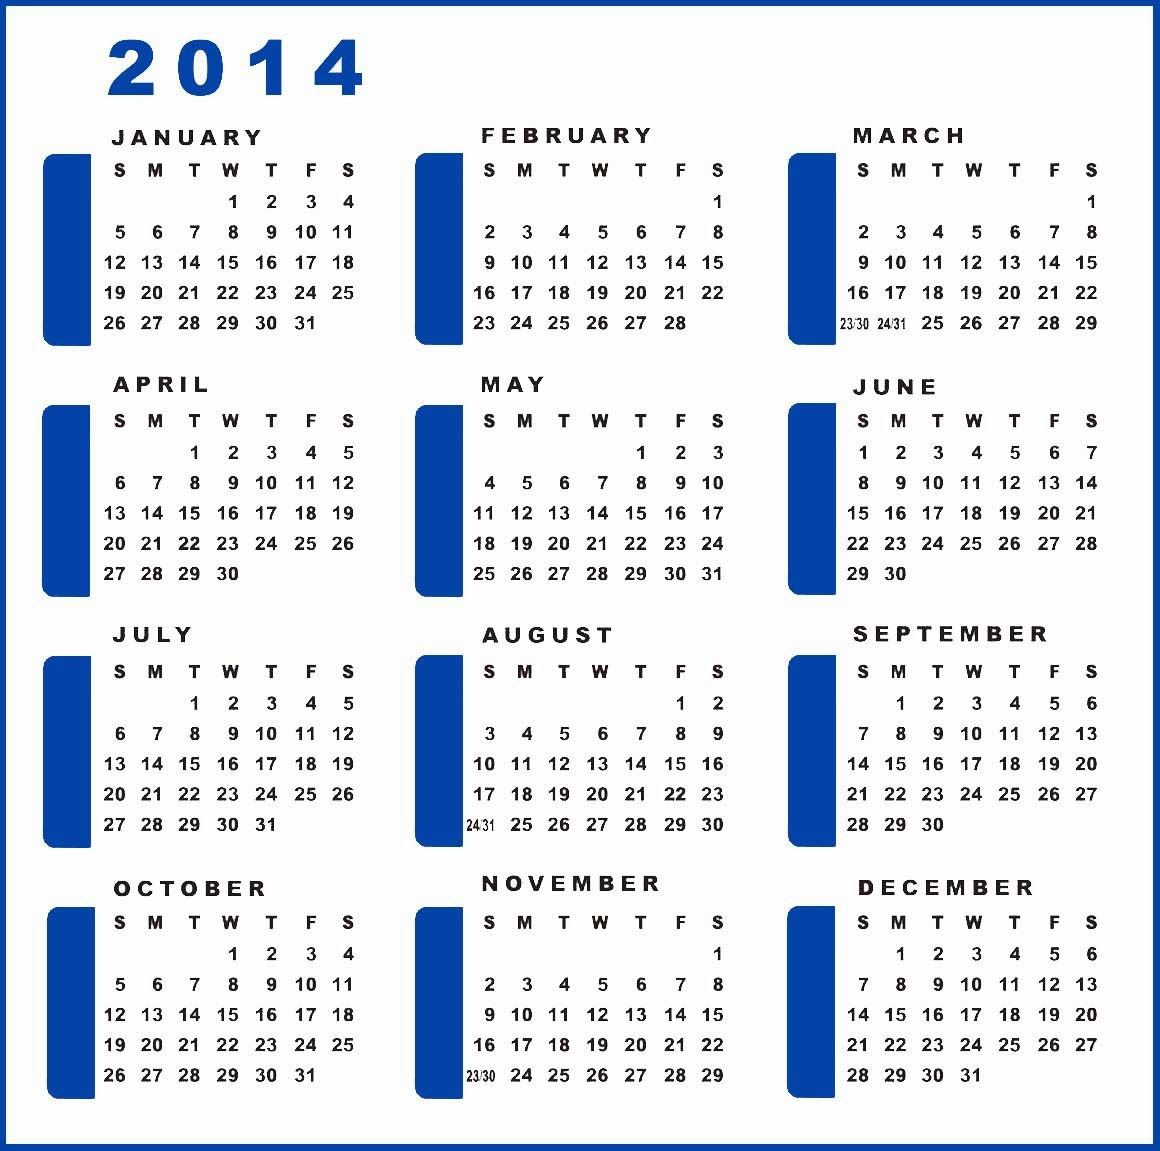 yearly calendar 2014   printable calendar 2014  blank calendar 2014  download calendar 2014 template